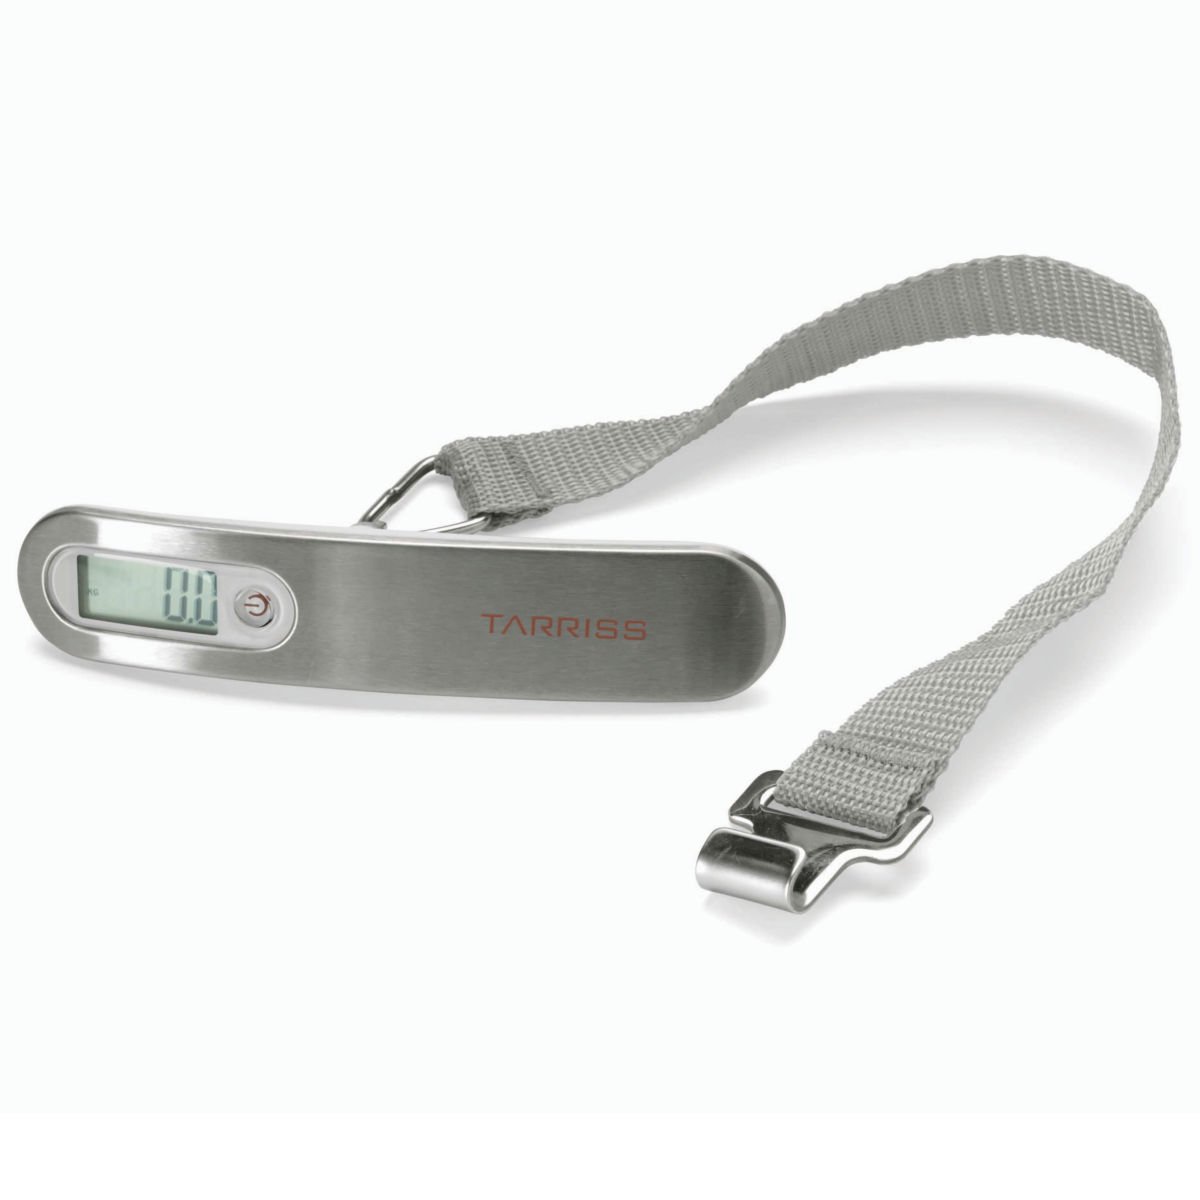 Digital Luggage Scale - image number 0